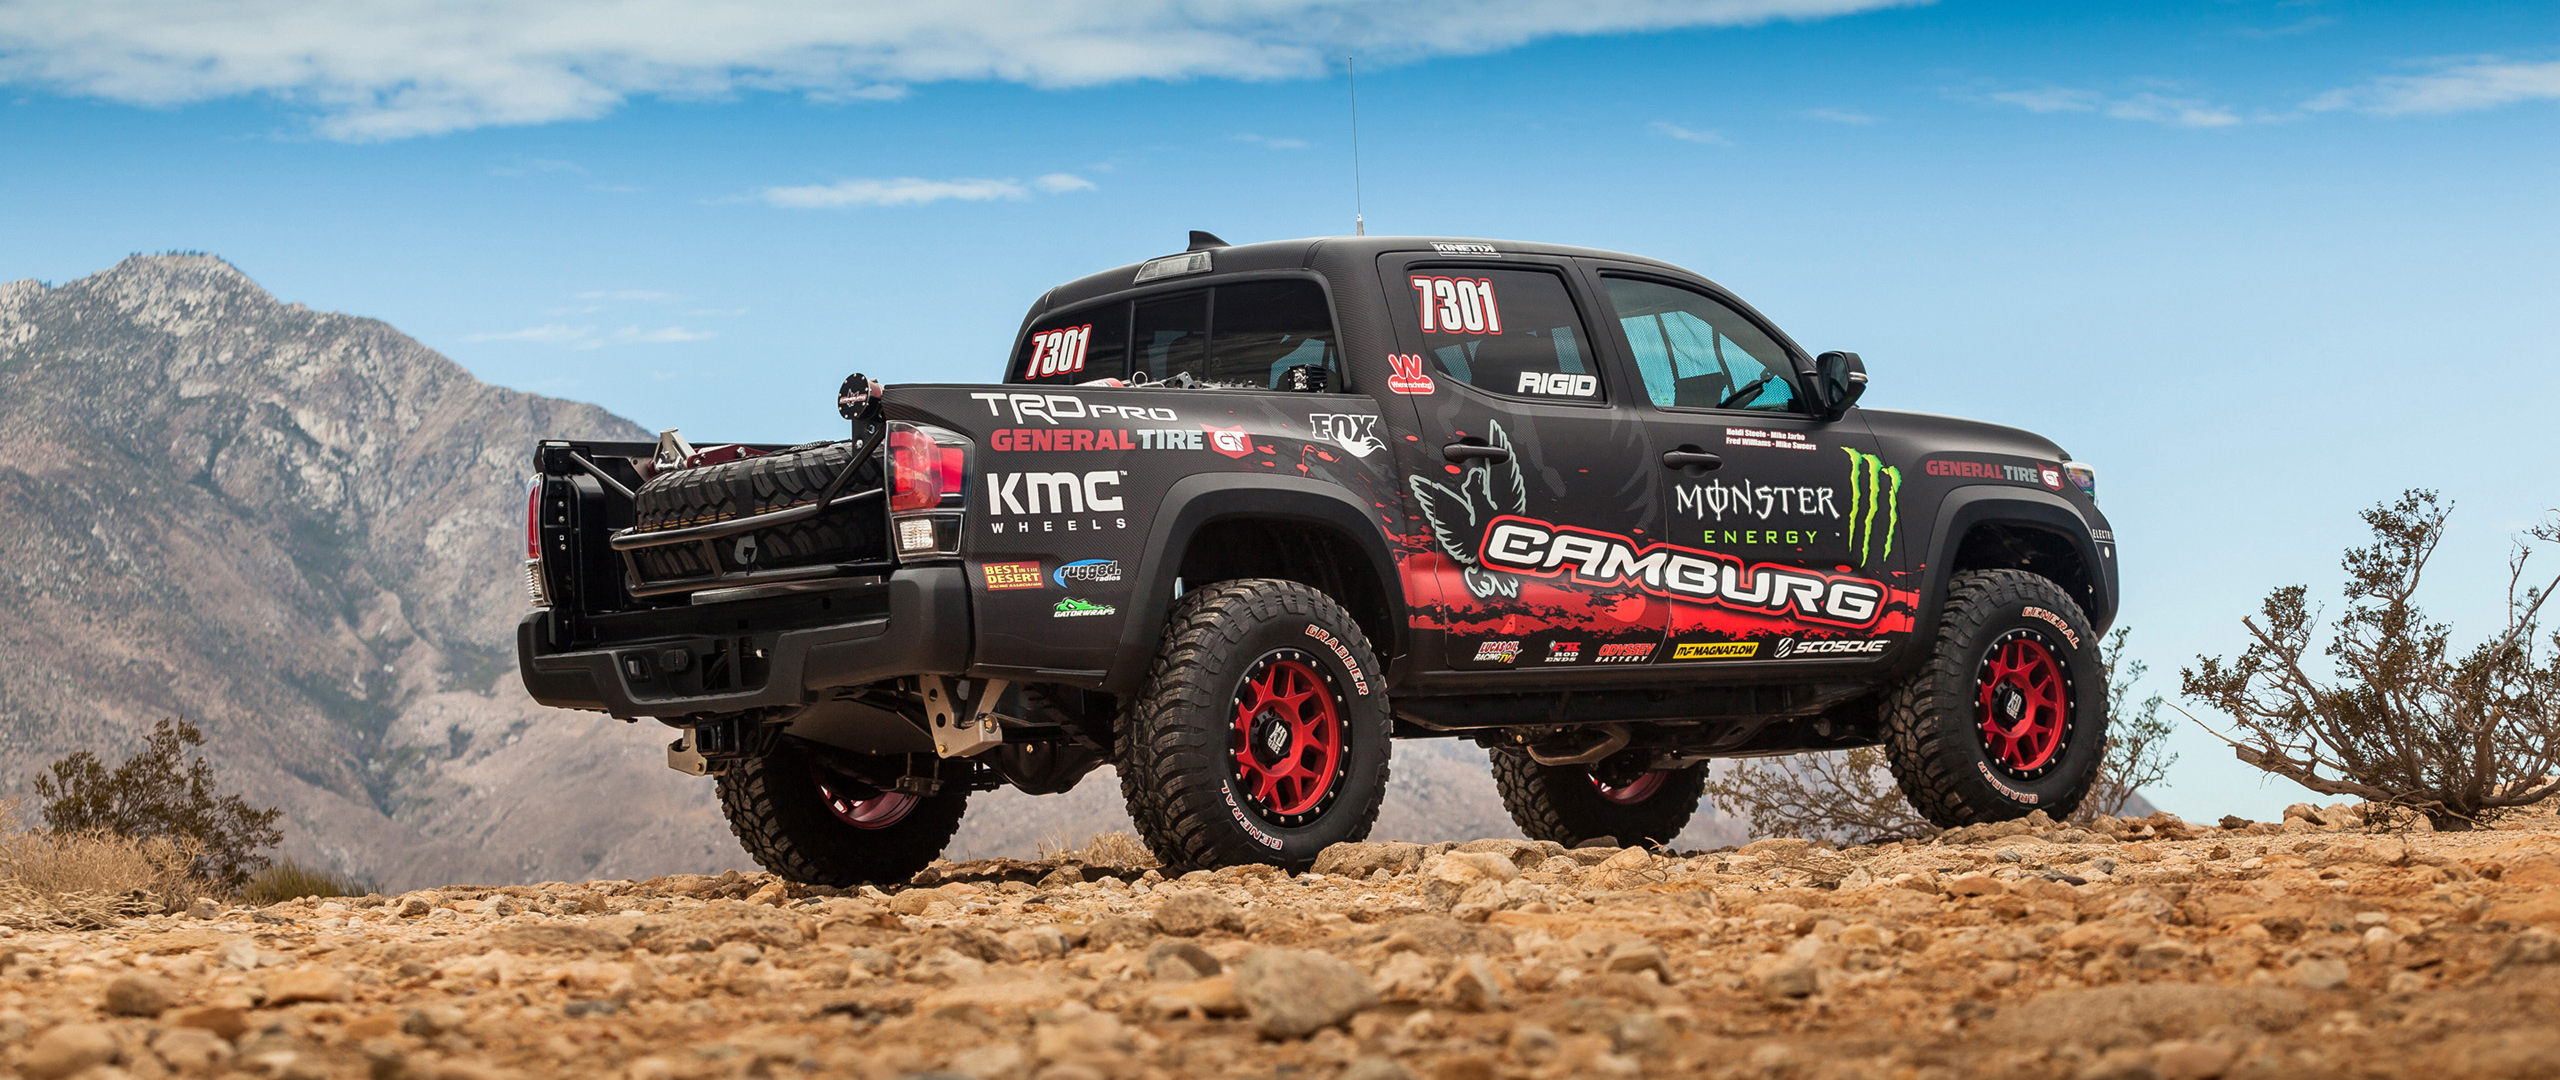 Download 2560x1080 Wallpaper Toyota Tacoma Race Truck Dual